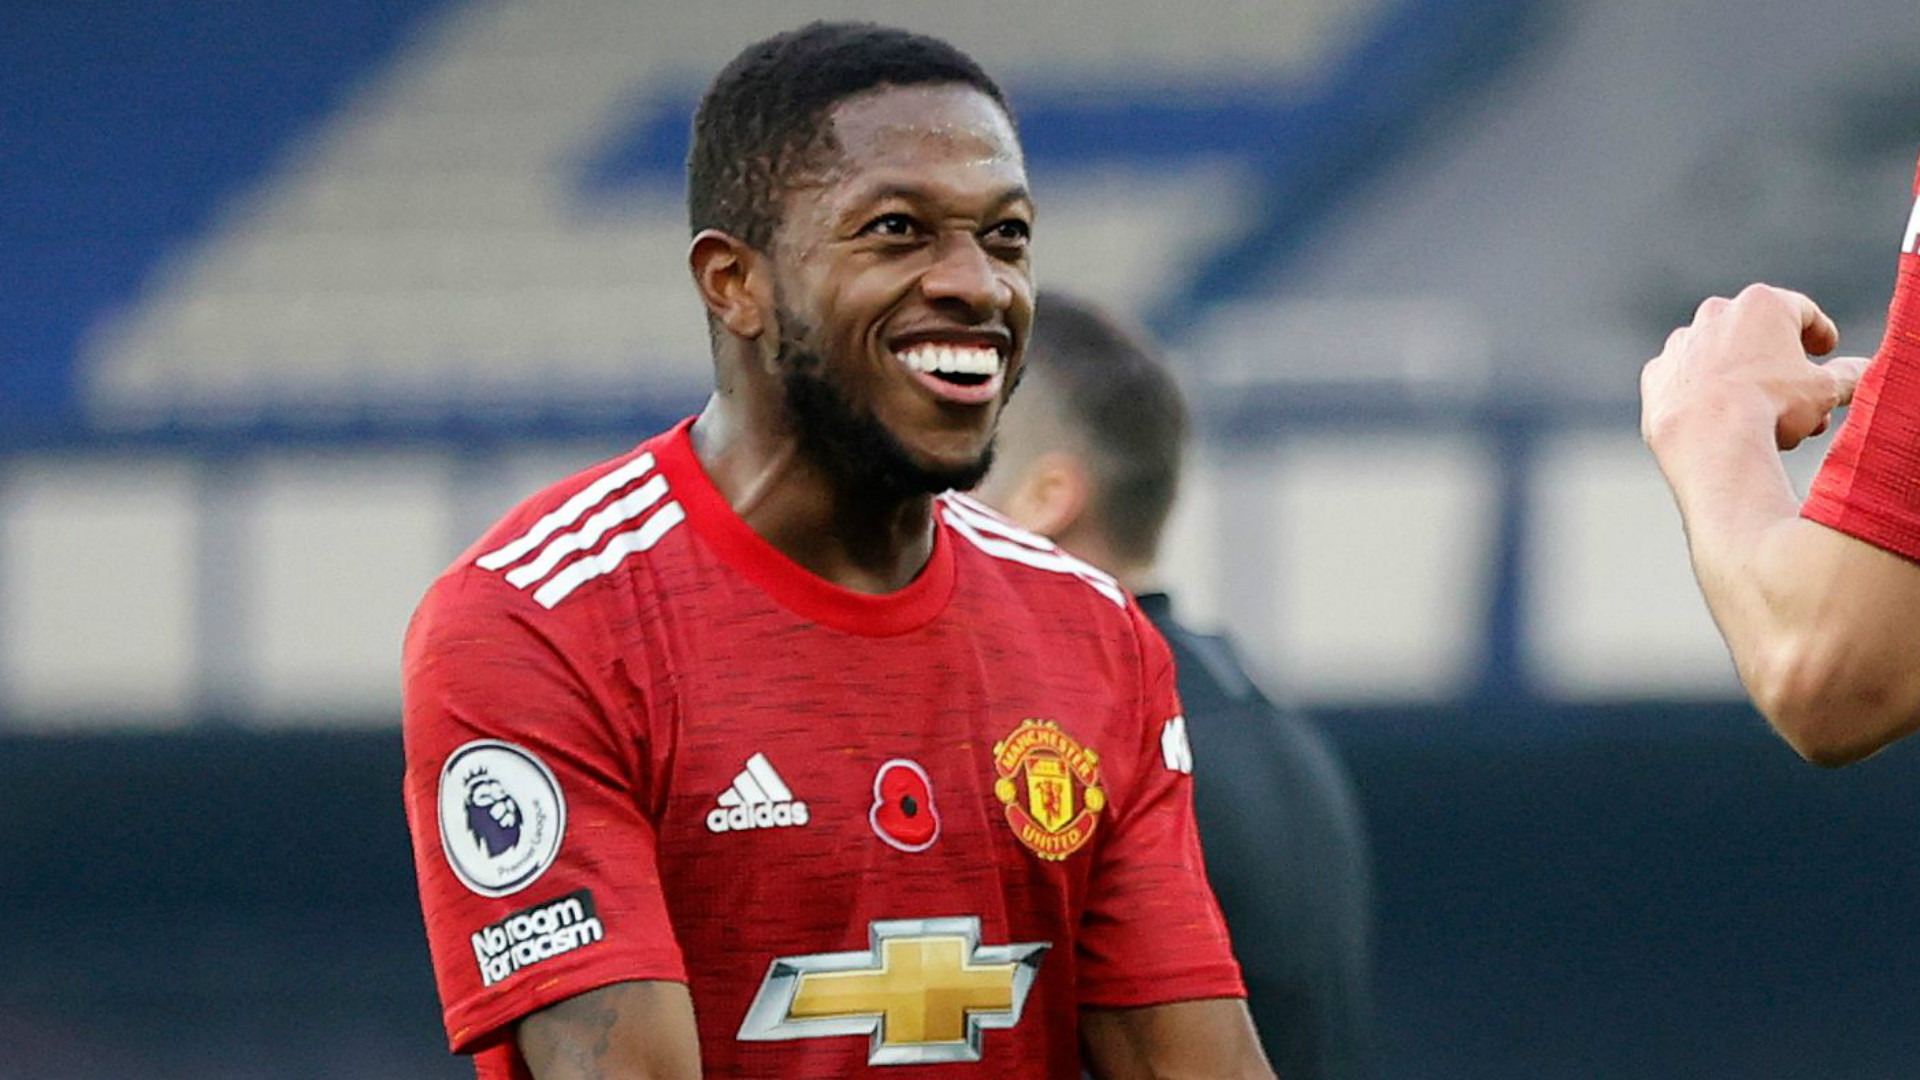 Fred sets Man Utd top spot target in intriguing Premier League title tussle